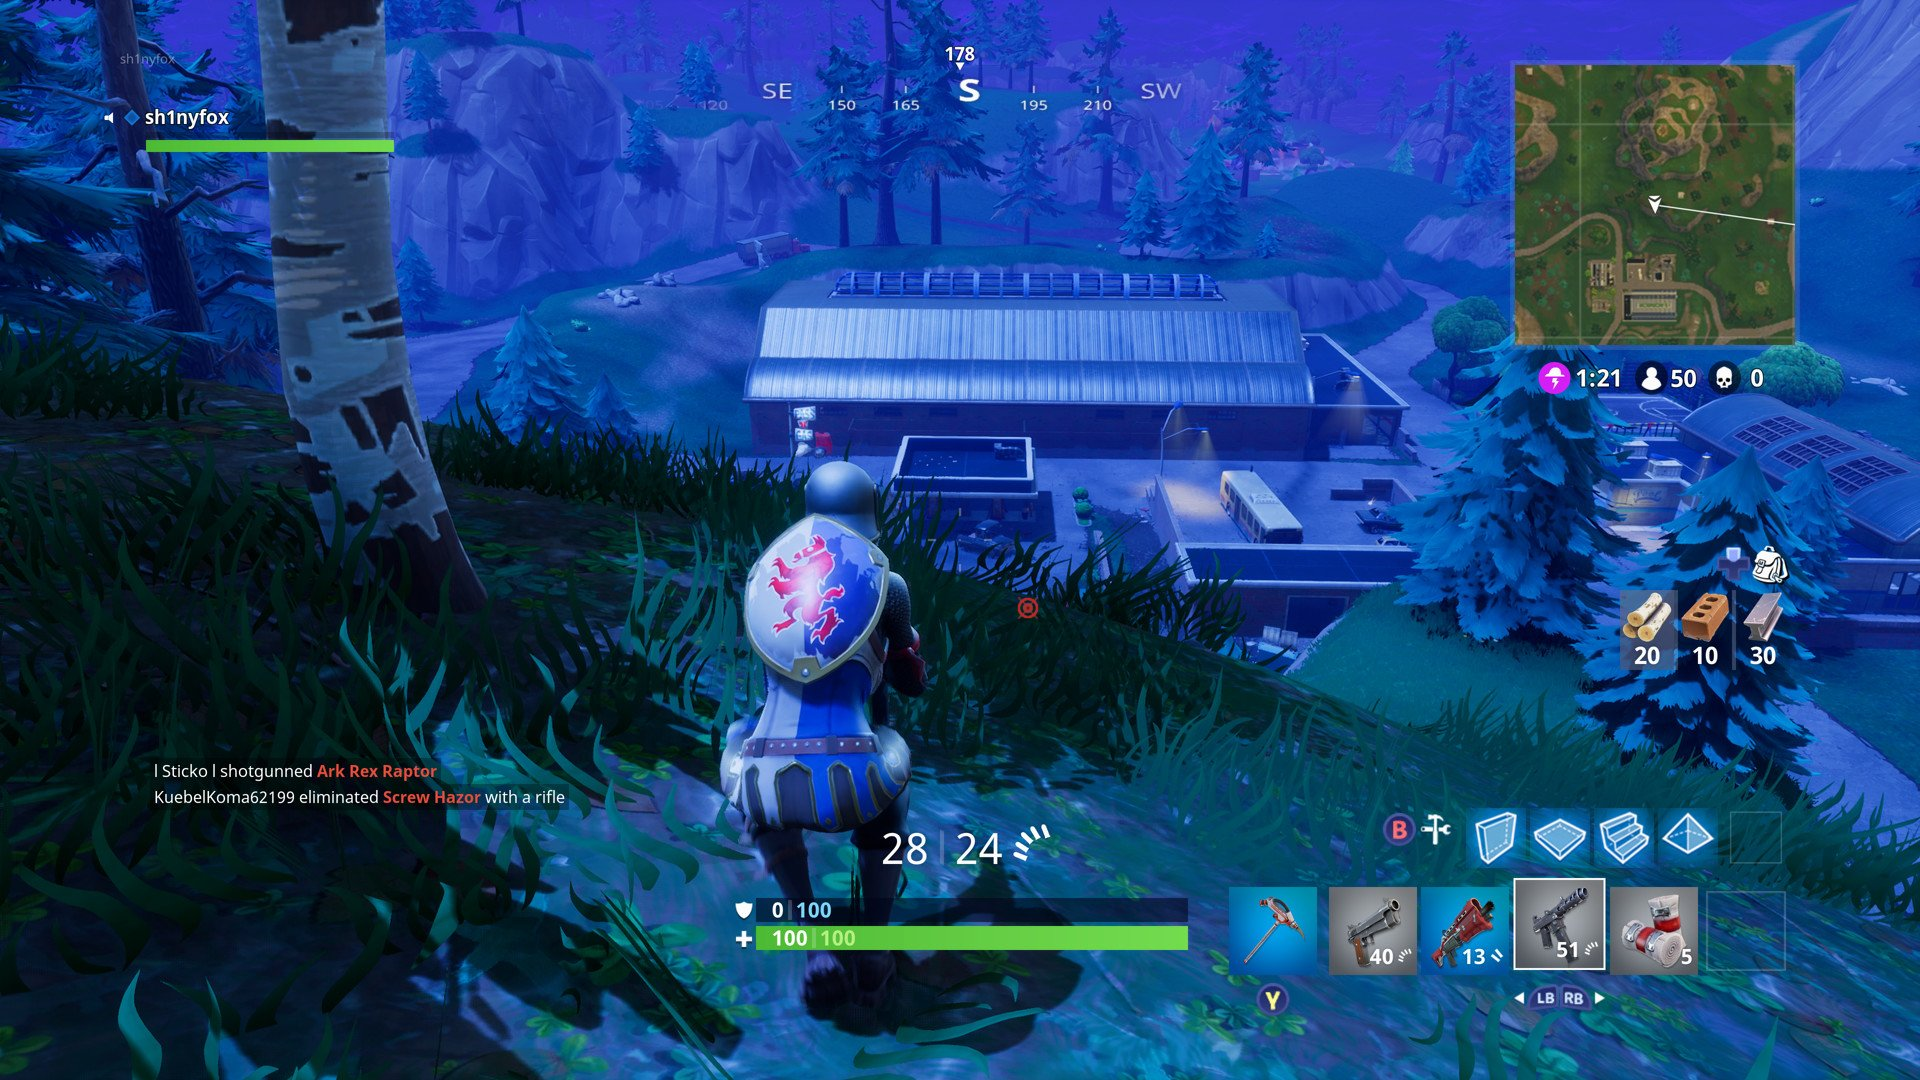 Top 10 Best Fornite Wallpapers Attn Game Devs Fortnite Battle Royale Is Free To Play